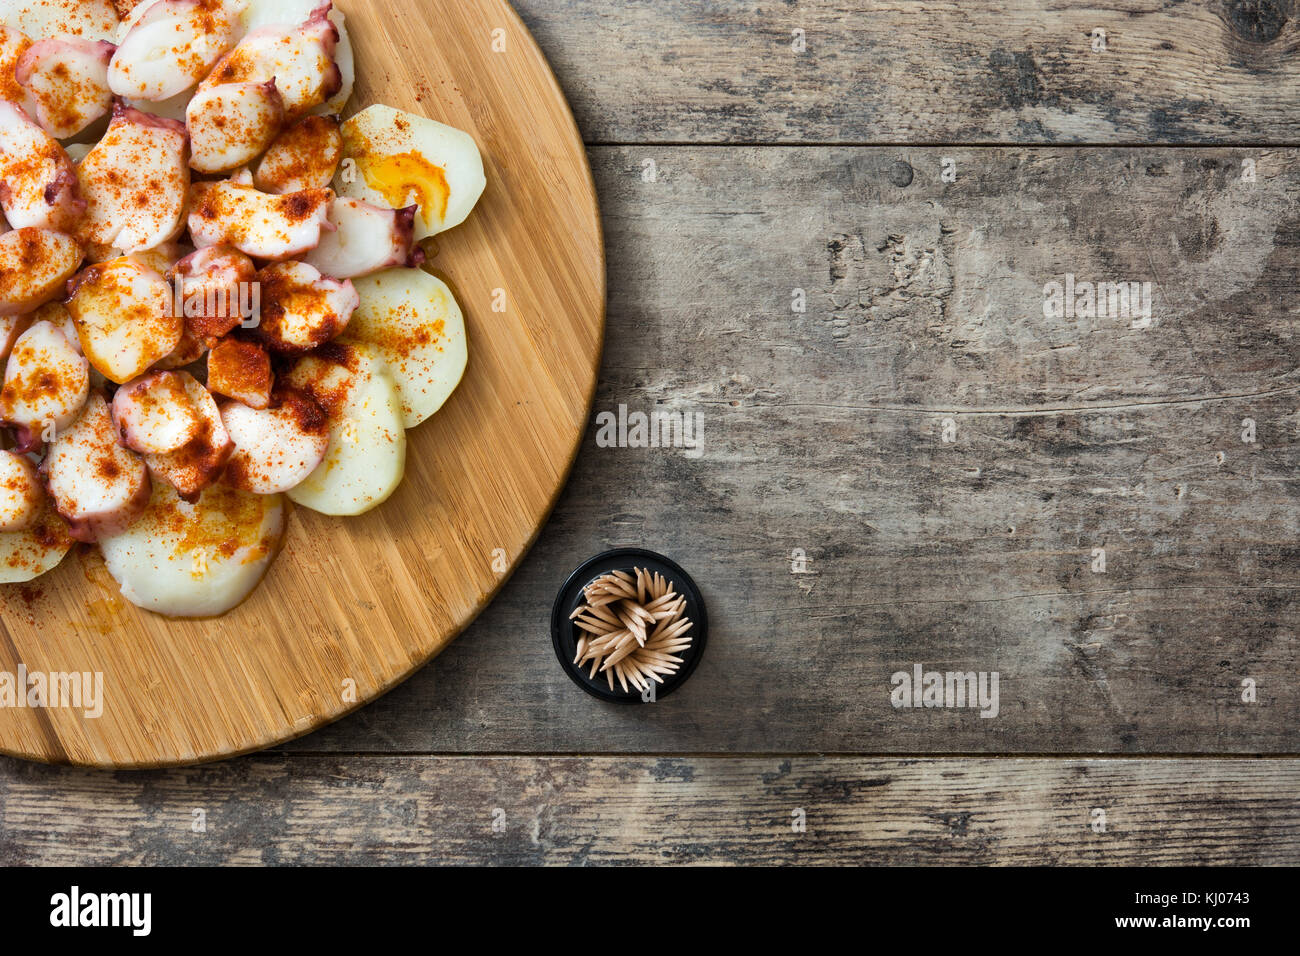 Pulpo a la gallega. Galician octopus on wood. Typical spanish food - Stock Image